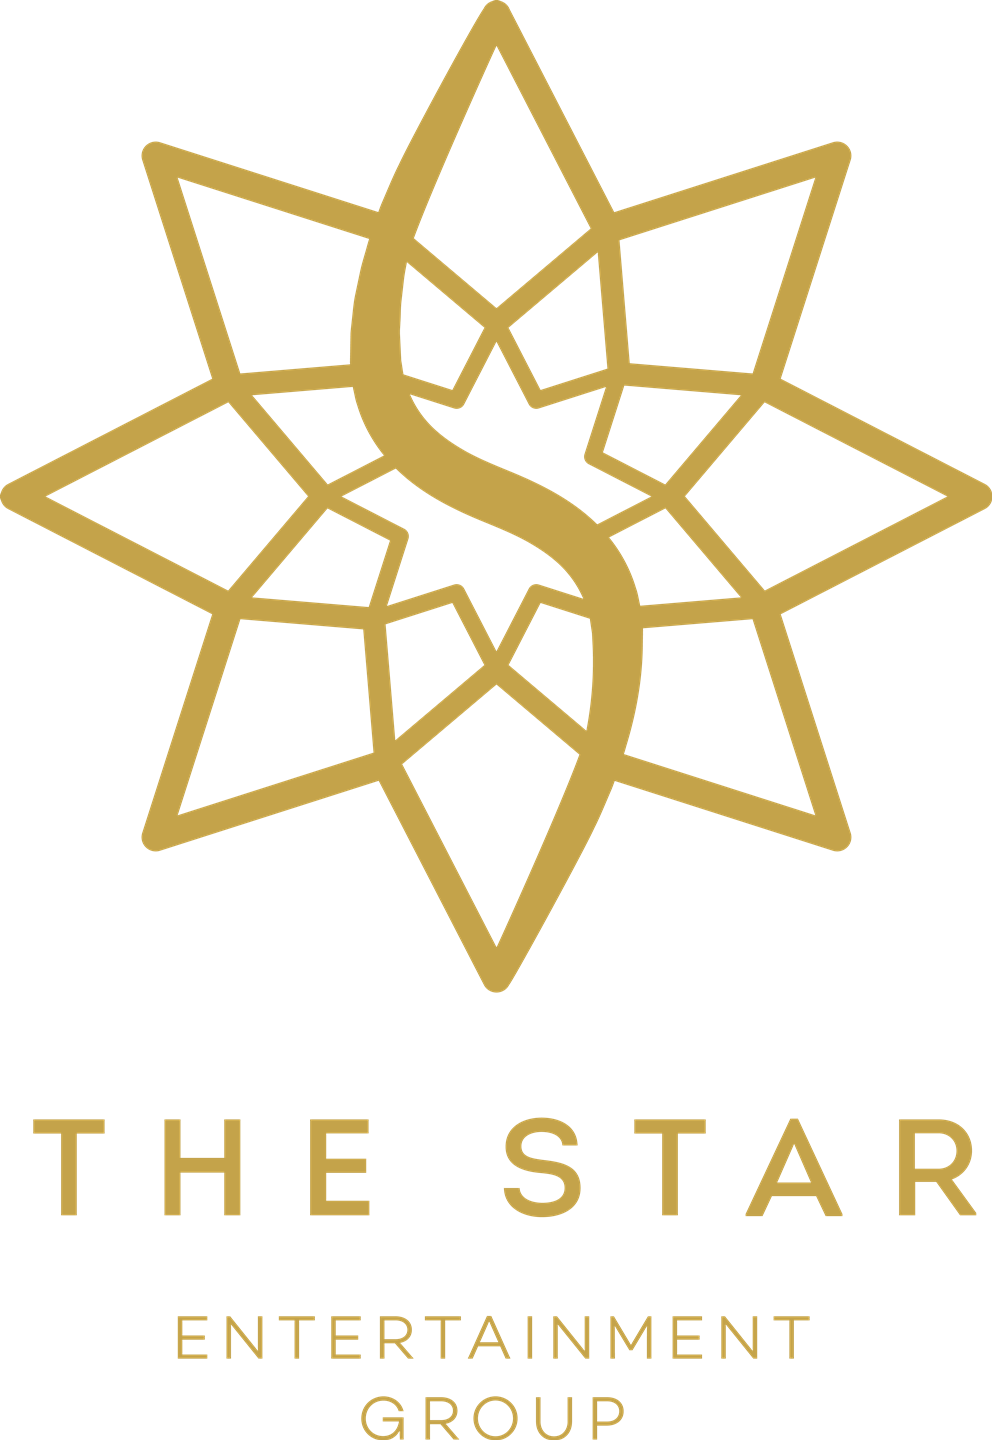 THE STAR - Entertainment Group